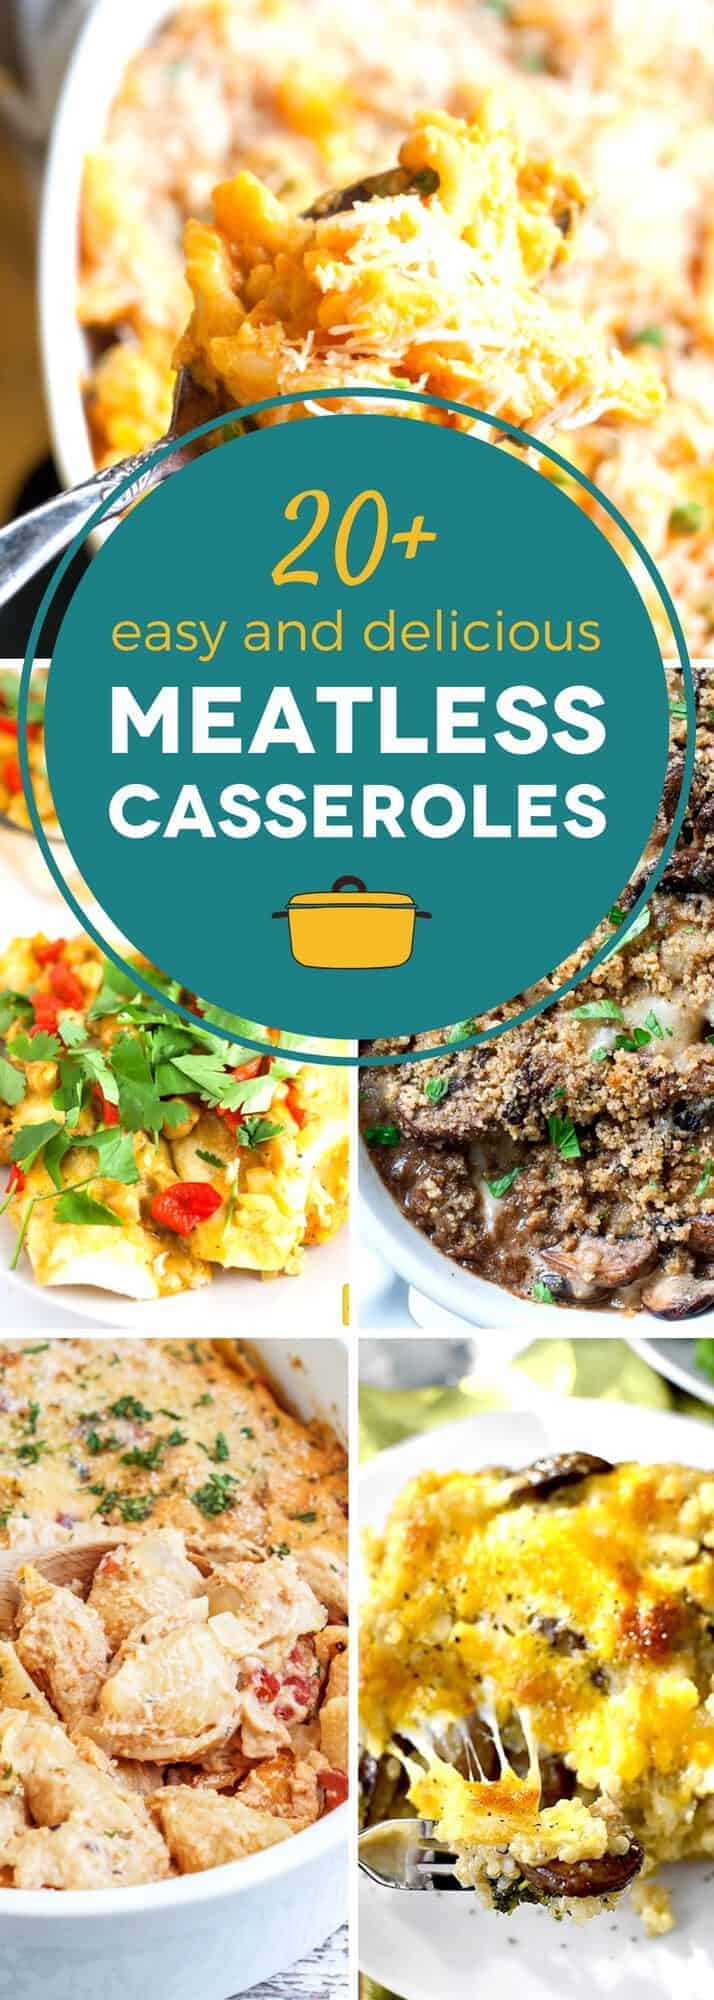 Cooking a delicious meatless meal doesn't have to be a challenge! This collection of meatless casseroles offers over 20 easy meatless recipes, perfect for Lent or Meatless Monday. From baked pasta recipes and potato skillets, to veggie enchilada casseroles, you'll find plenty of tasty meatless meals on this list! #SundaySupper #casserole #meatlessmonday #veggielove